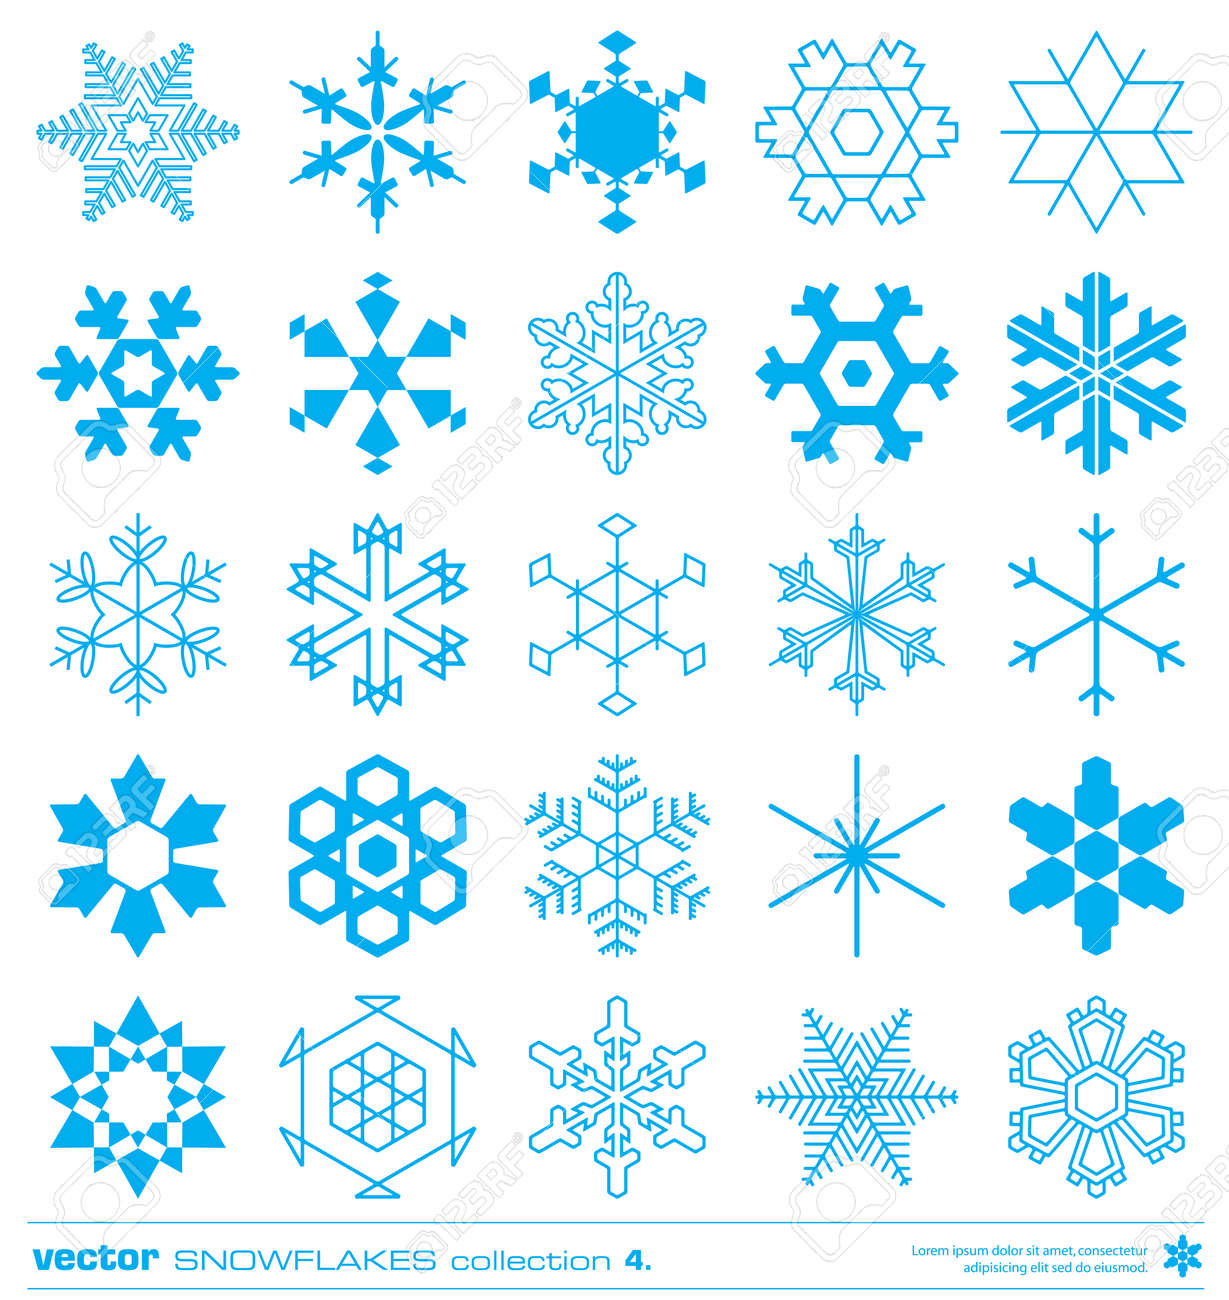 snowflakes silhouette design vector set concept christmas snowflakes icon collection stock vector 23859212